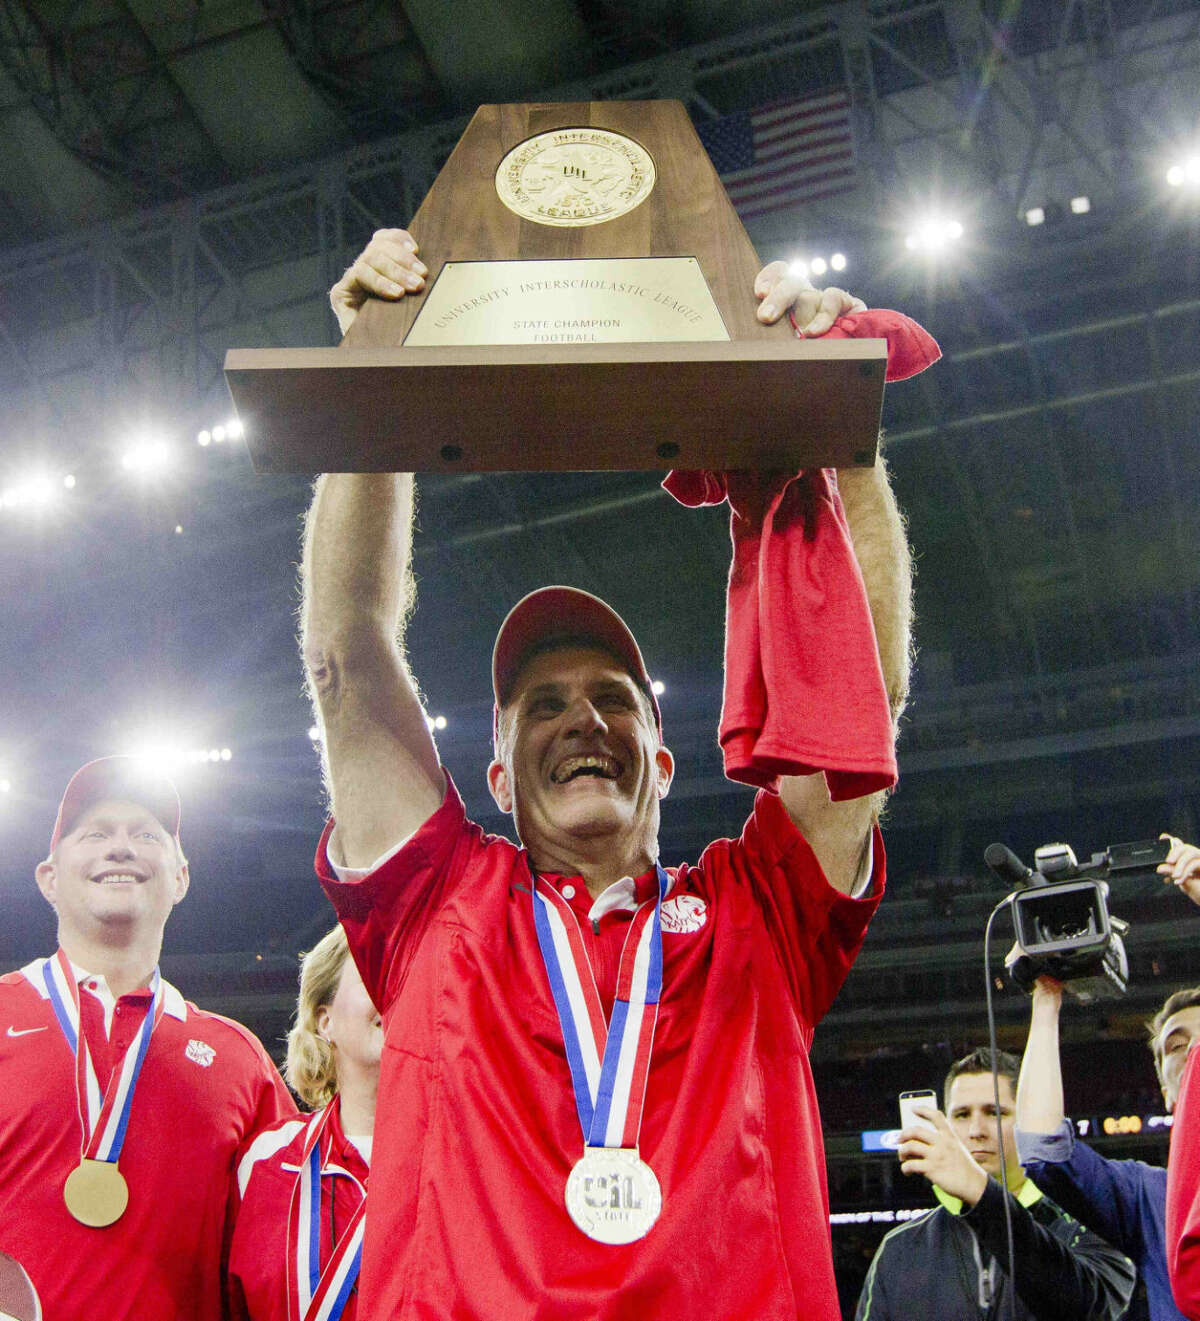 Katy head coach Gary Joseph celebrates after defeating Austin Lake Travis 34-7 to win the Class 6A Division II state championship Dec. 19 at NRG Stadium in Houston. Joseph was honored prior to the game during a ceremony recognizing the 2016 inductees into the Texas High School Football Hall of Fame.